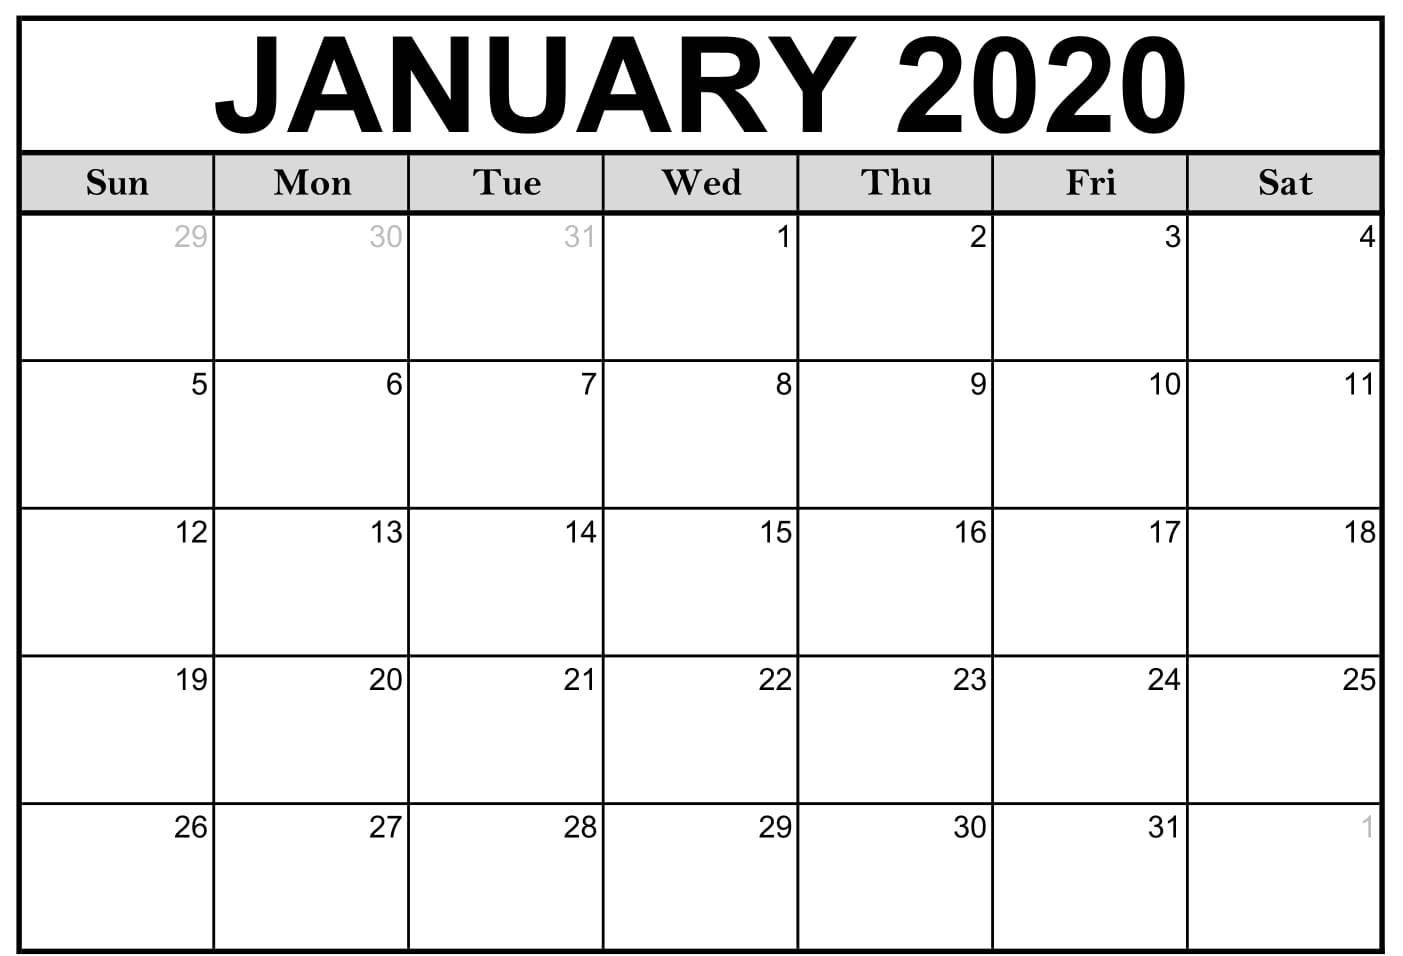 Blank January 2020 Calendar Template #2020Calendar regarding January 2020 Calendar Blank